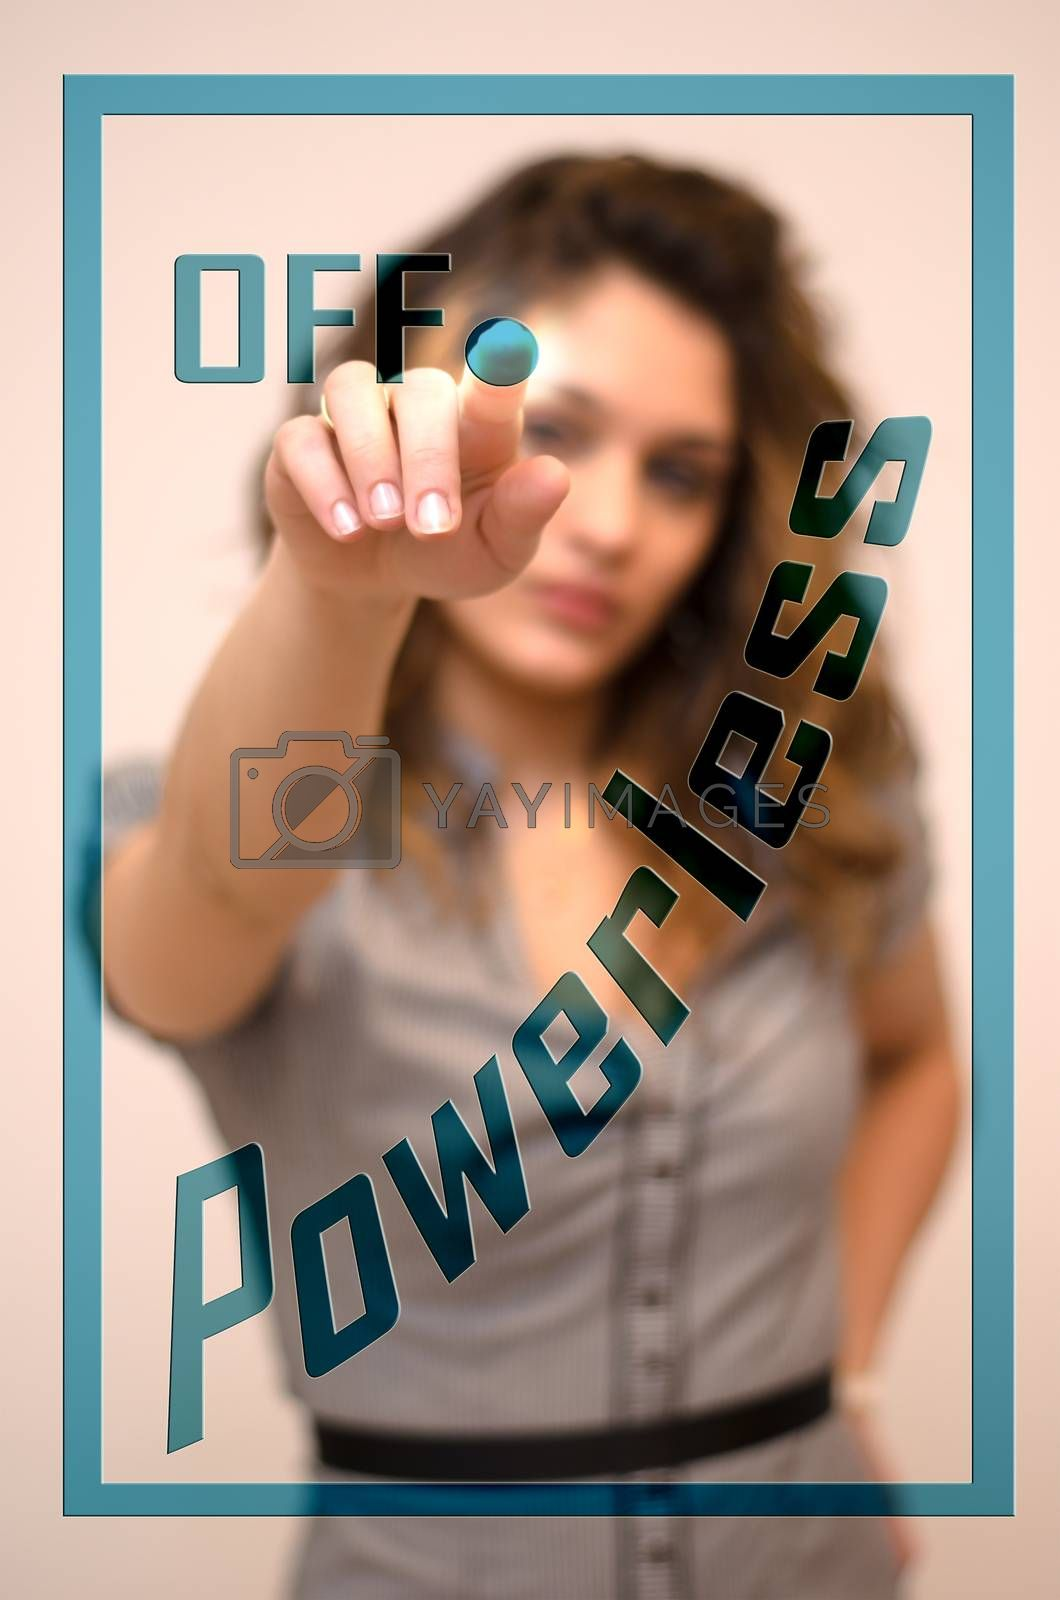 Royalty free image of woman turning off Powerless on panel by vepar5